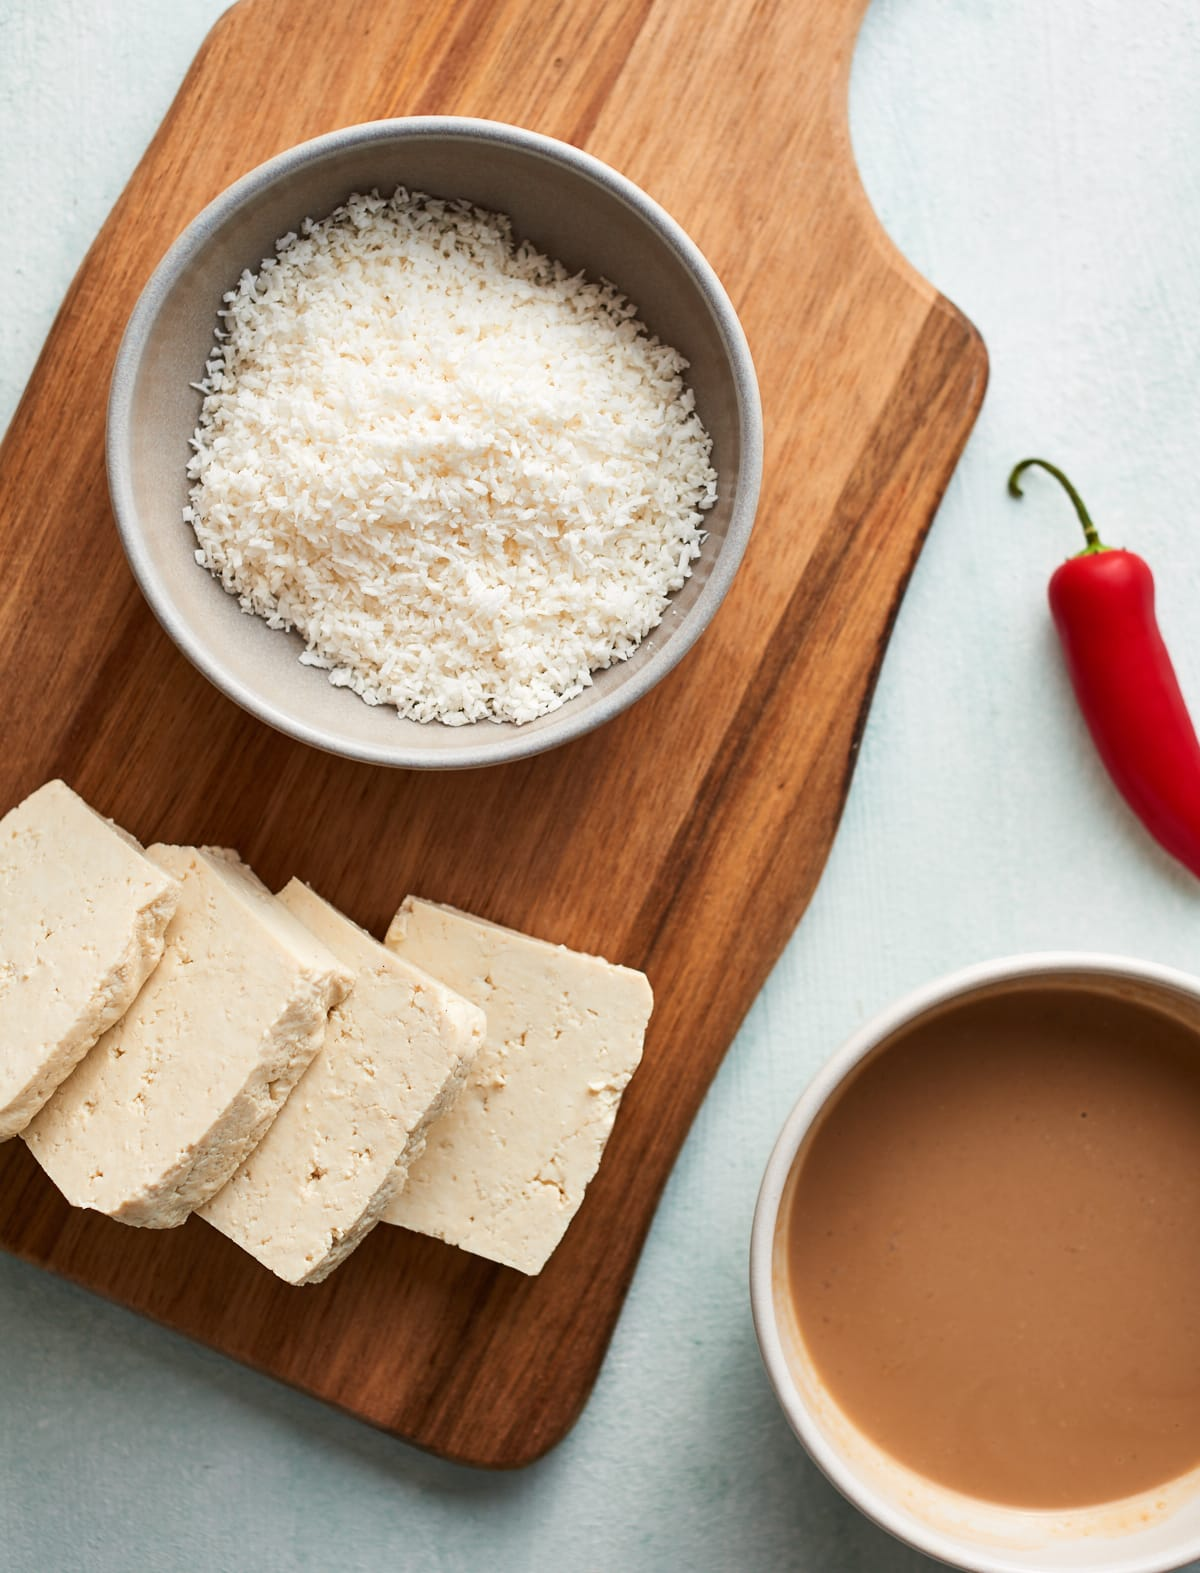 Ingredients for the coconut tofu